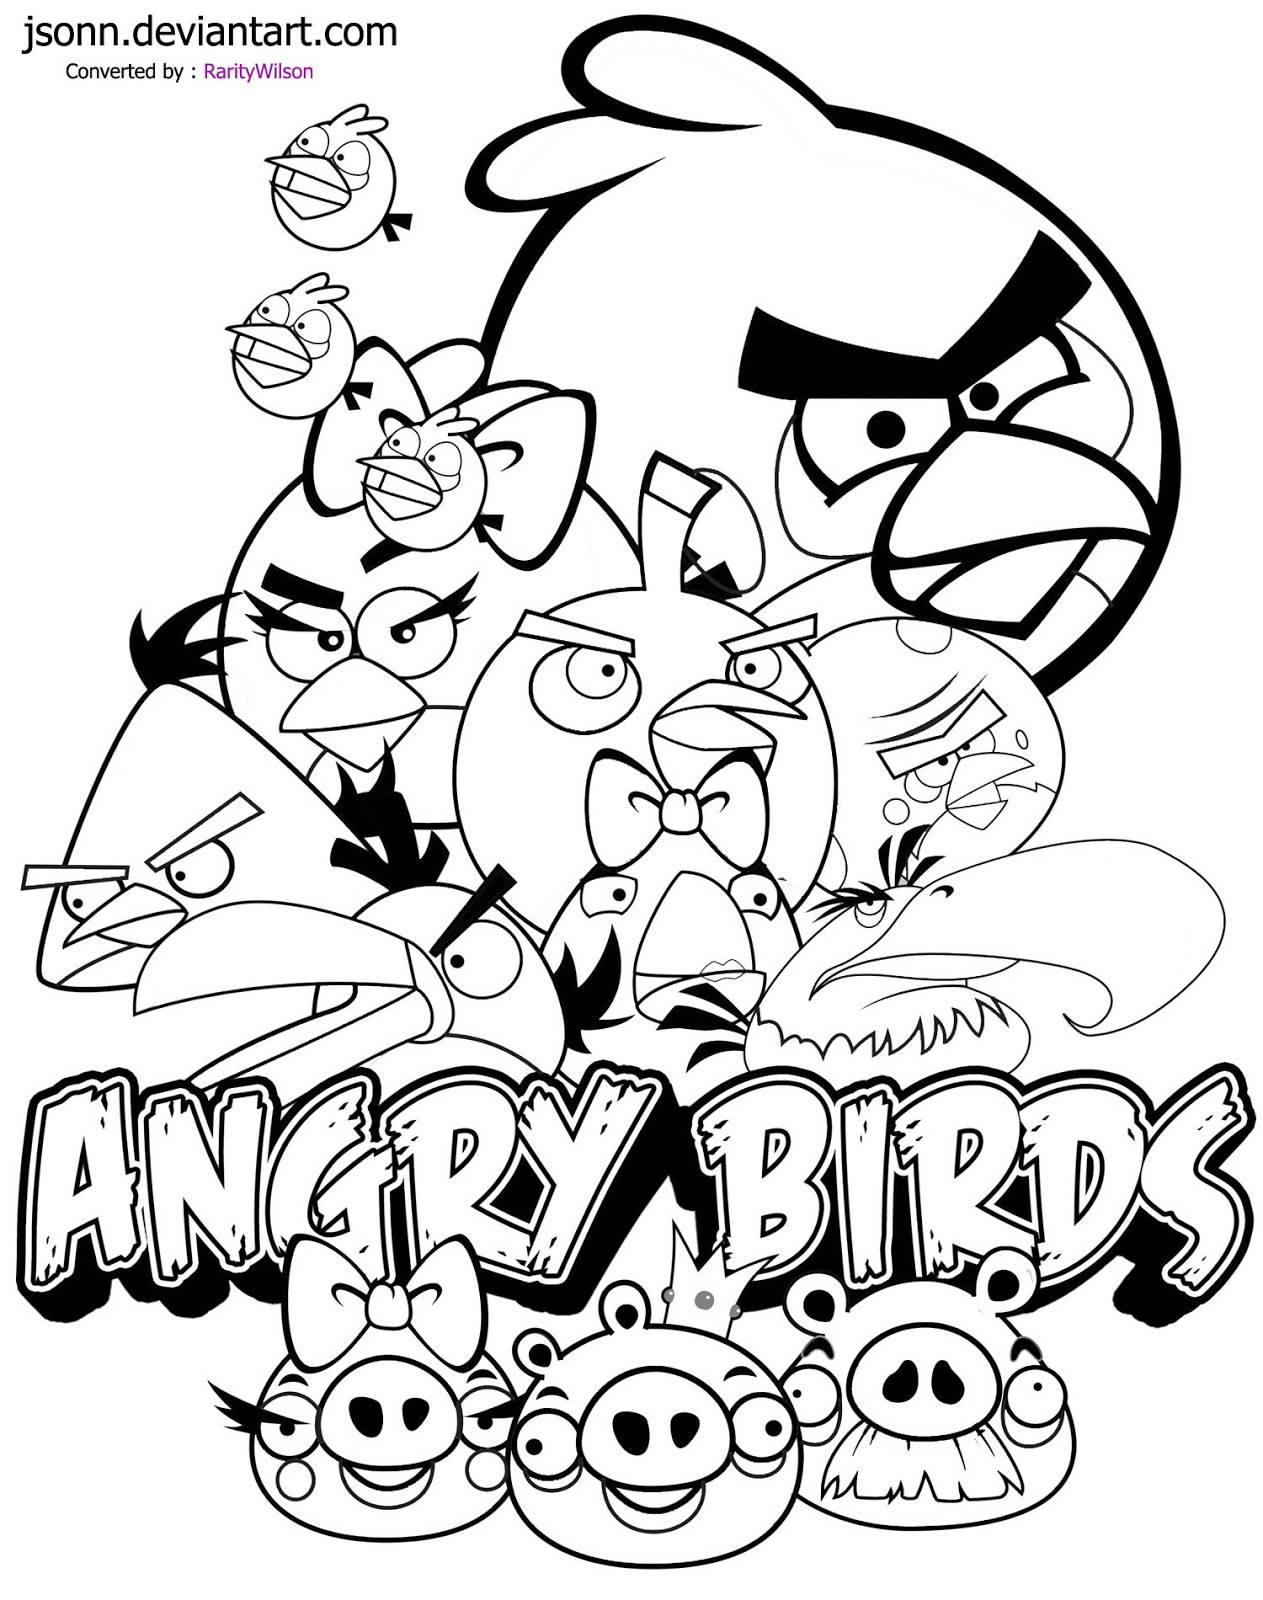 Coloring pages for angry birds